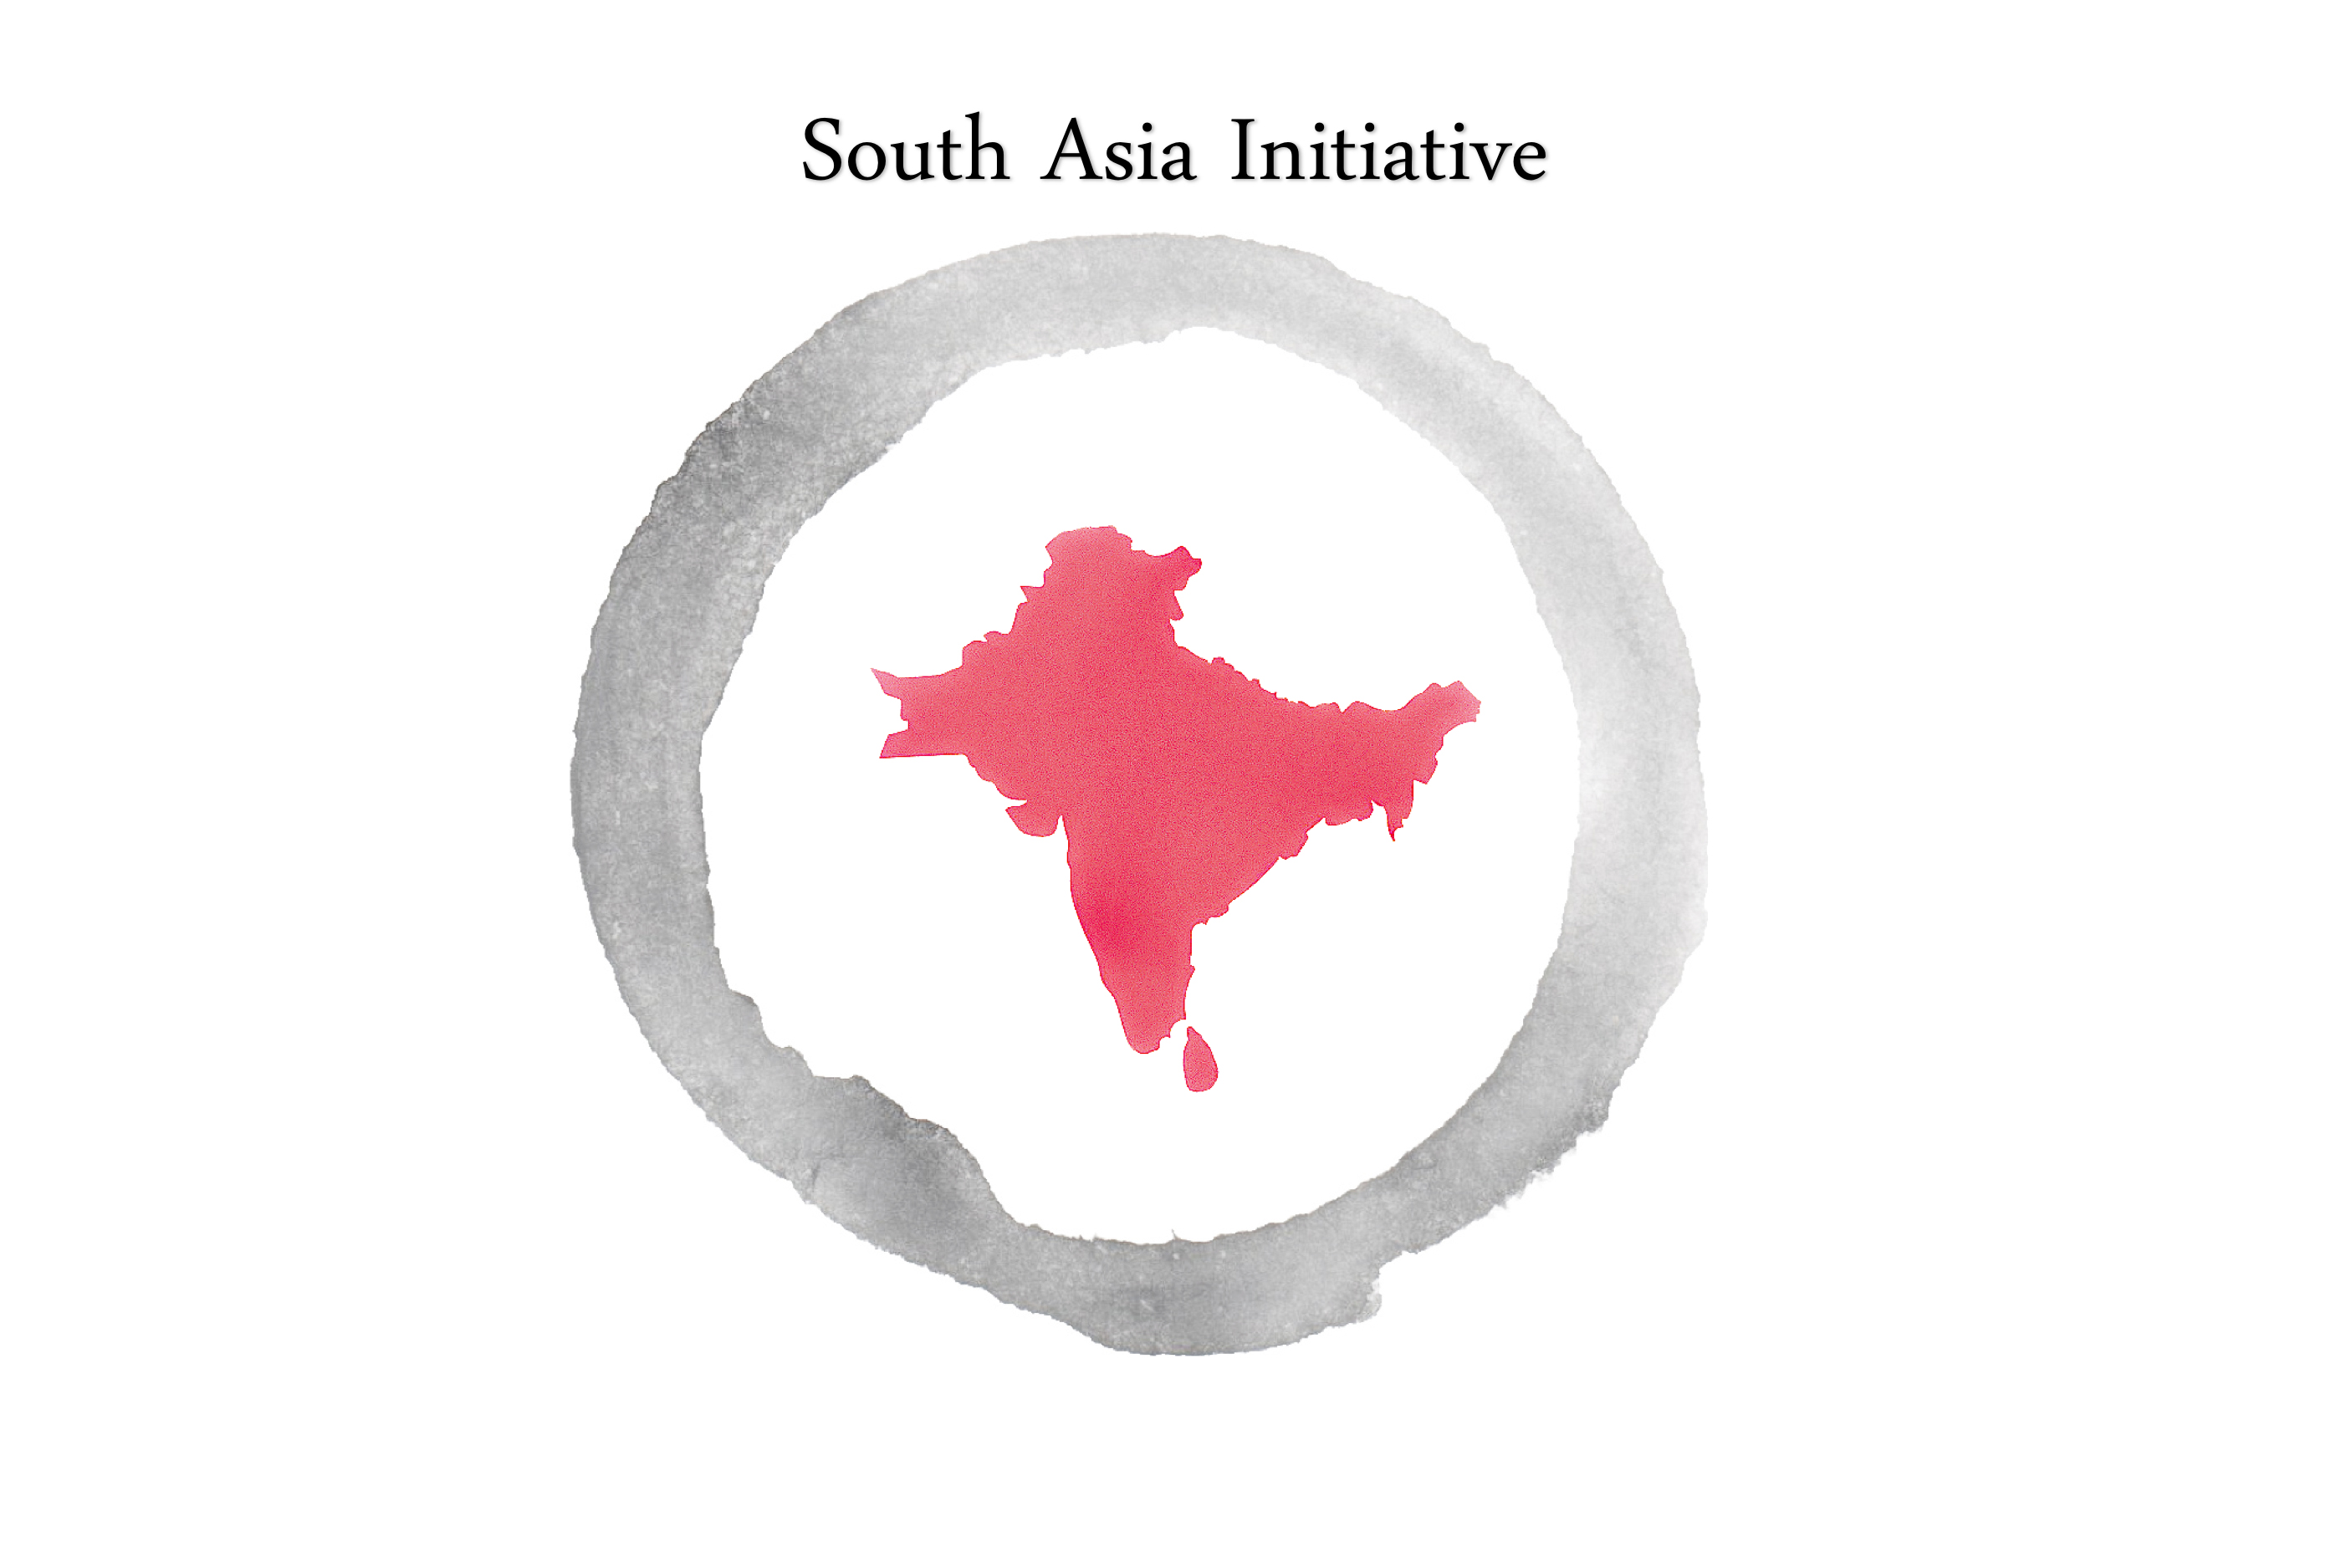 The South Asia Initiative